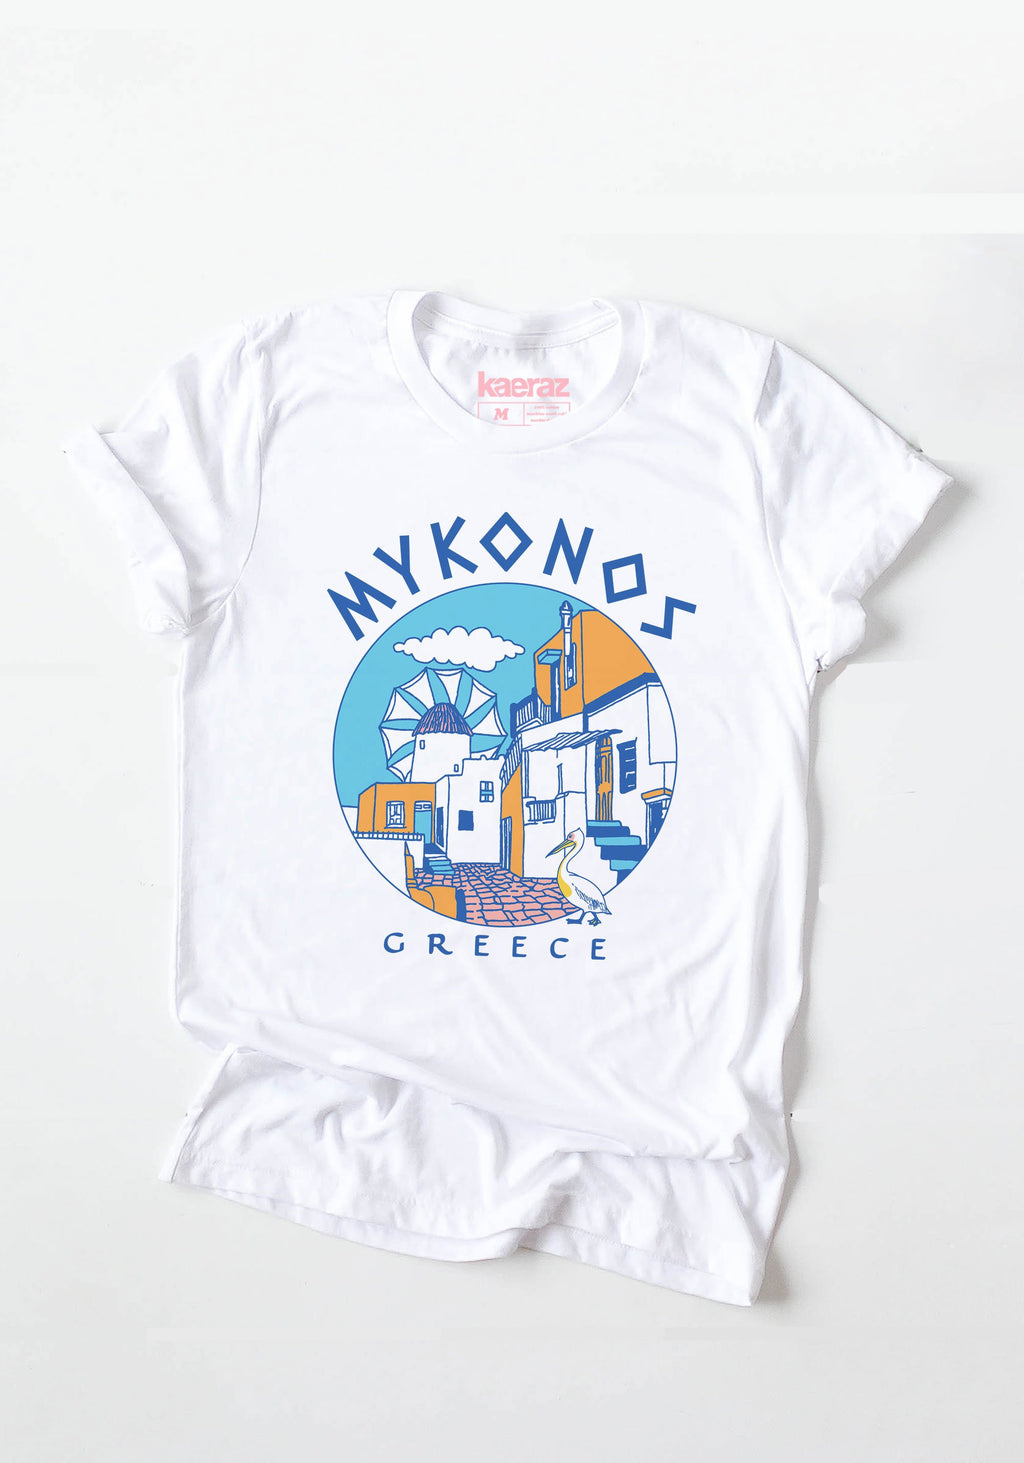 Mykonos Tee / womens graphic tees / vintage style 80s 90s Greece Greek souvenir tshirt / travel island shirt